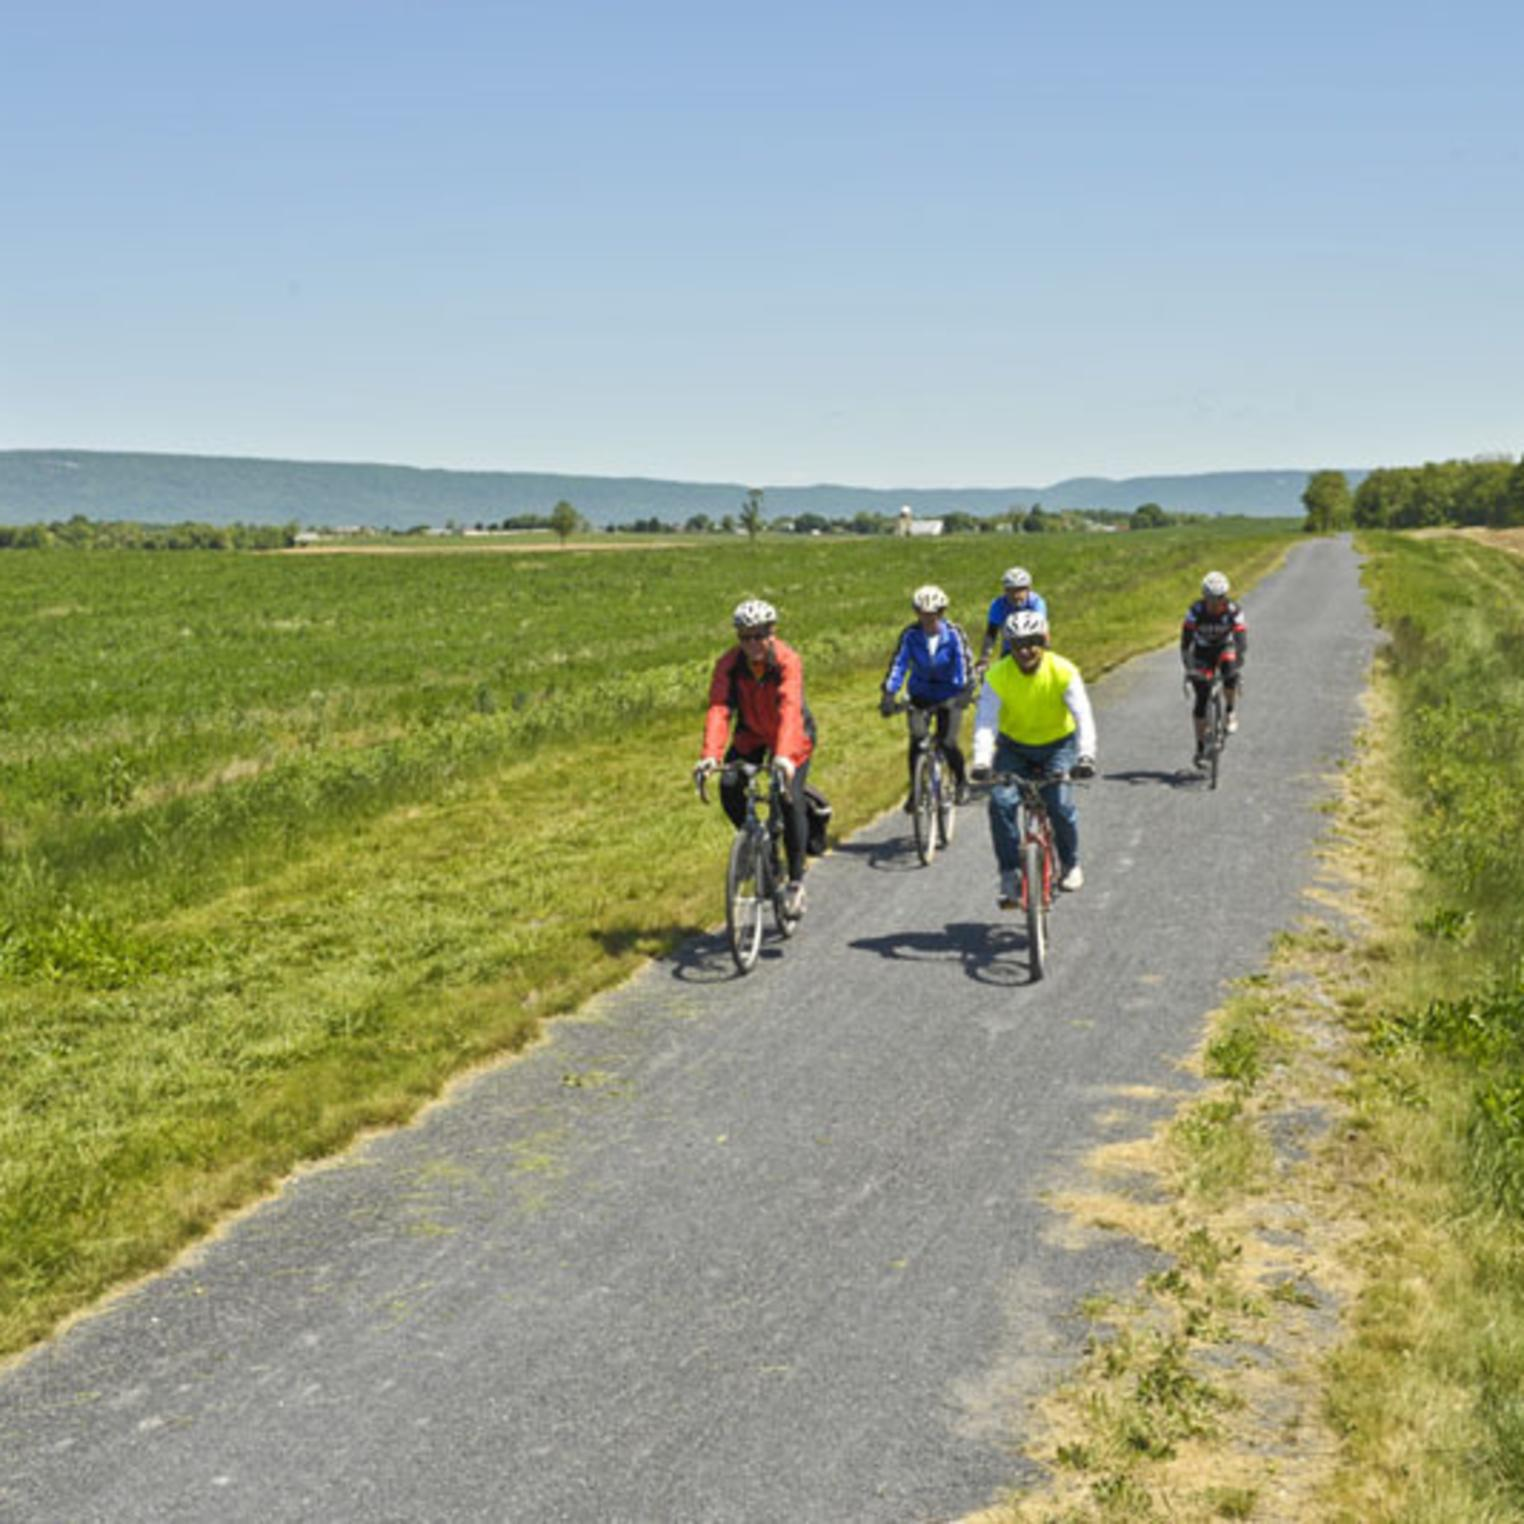 Biking on the Cumberland Valley Rail Trail